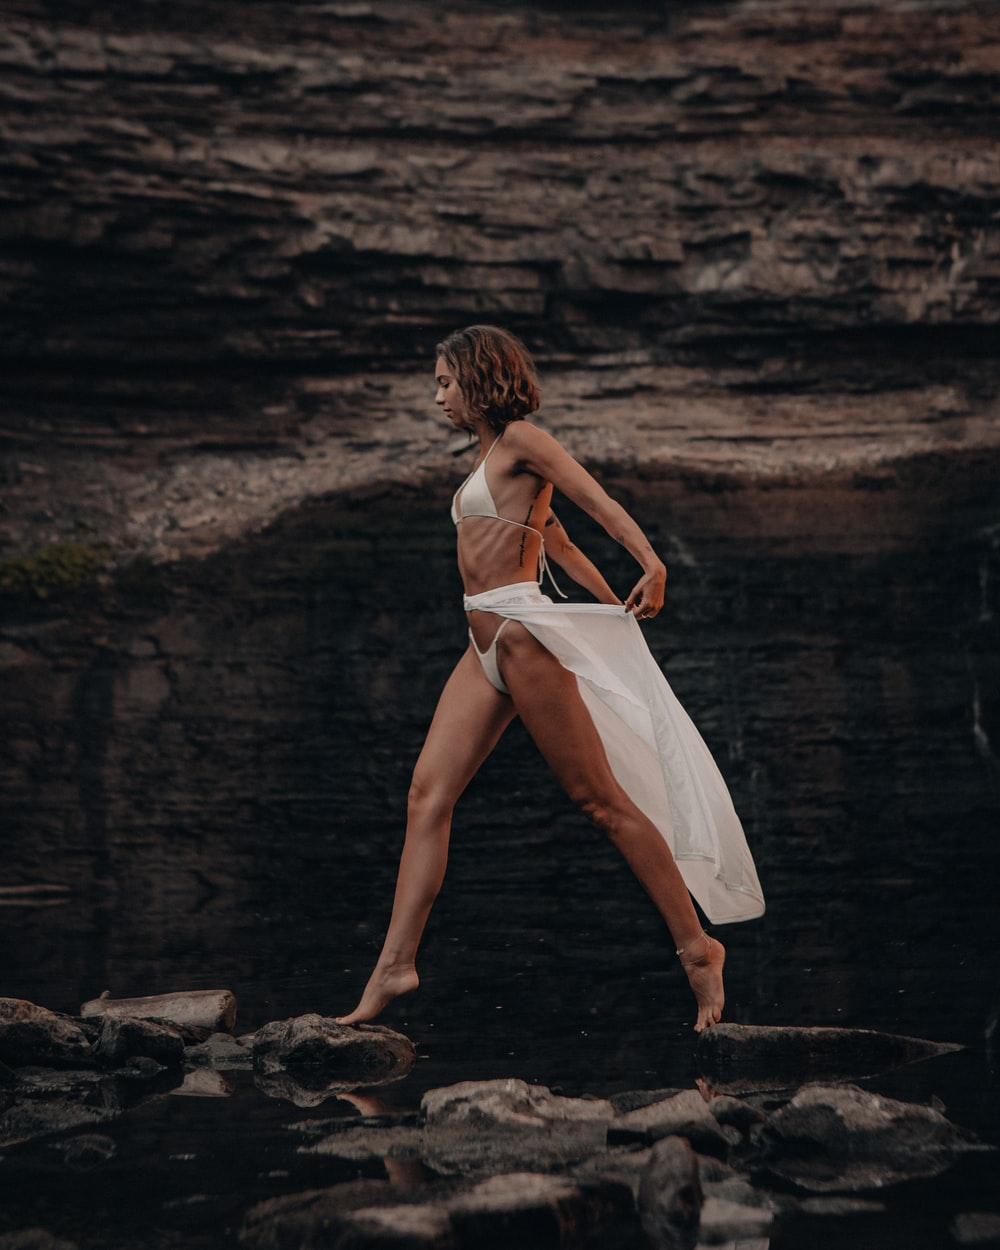 woman in white dress walking on rocky shore during daytime